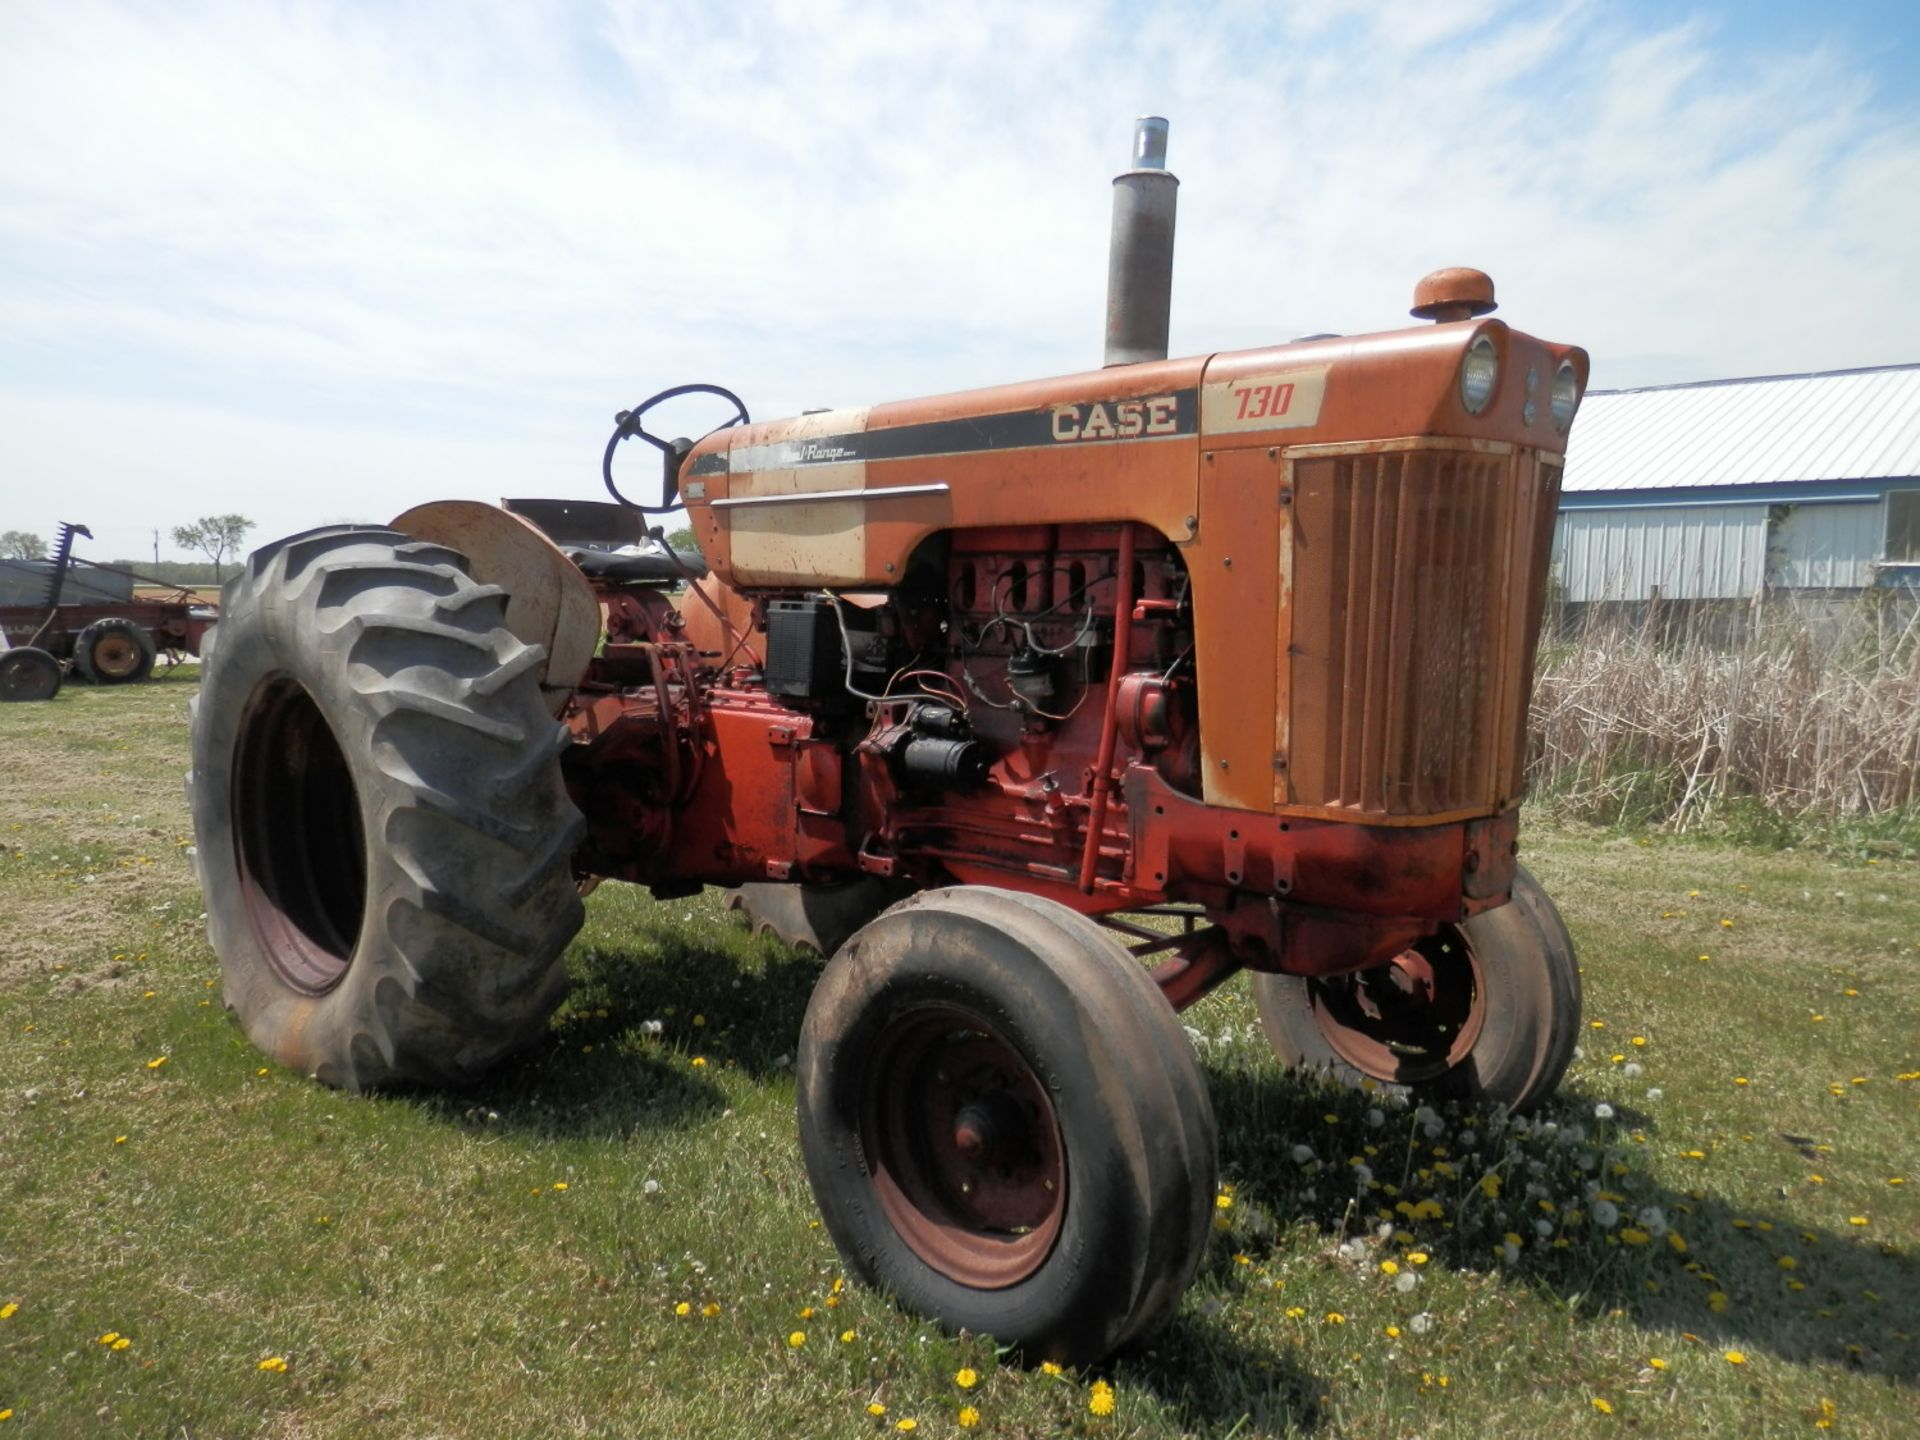 JI CASE 730 GAS TRACTOR - Image 2 of 10